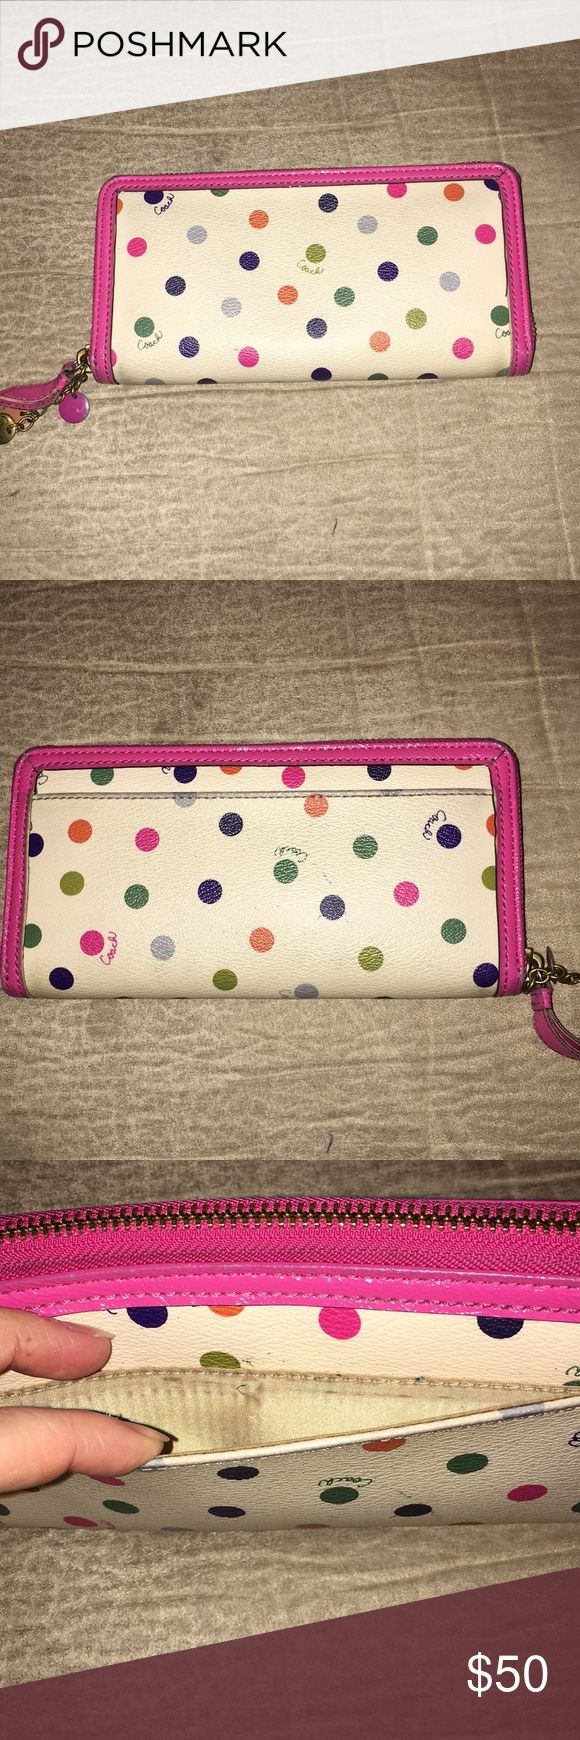 💗Coach Wallet💗 💗Coach Wallet💗 Accordion style, zip around Wallet. Overall the wallet is in great condition- it does show some signs of wear around the edges and top of the wallet. It has plenty of life left! It has 14 card slots and 6 money size slots. It comes from a smoke free home. Coach Bags Wallets